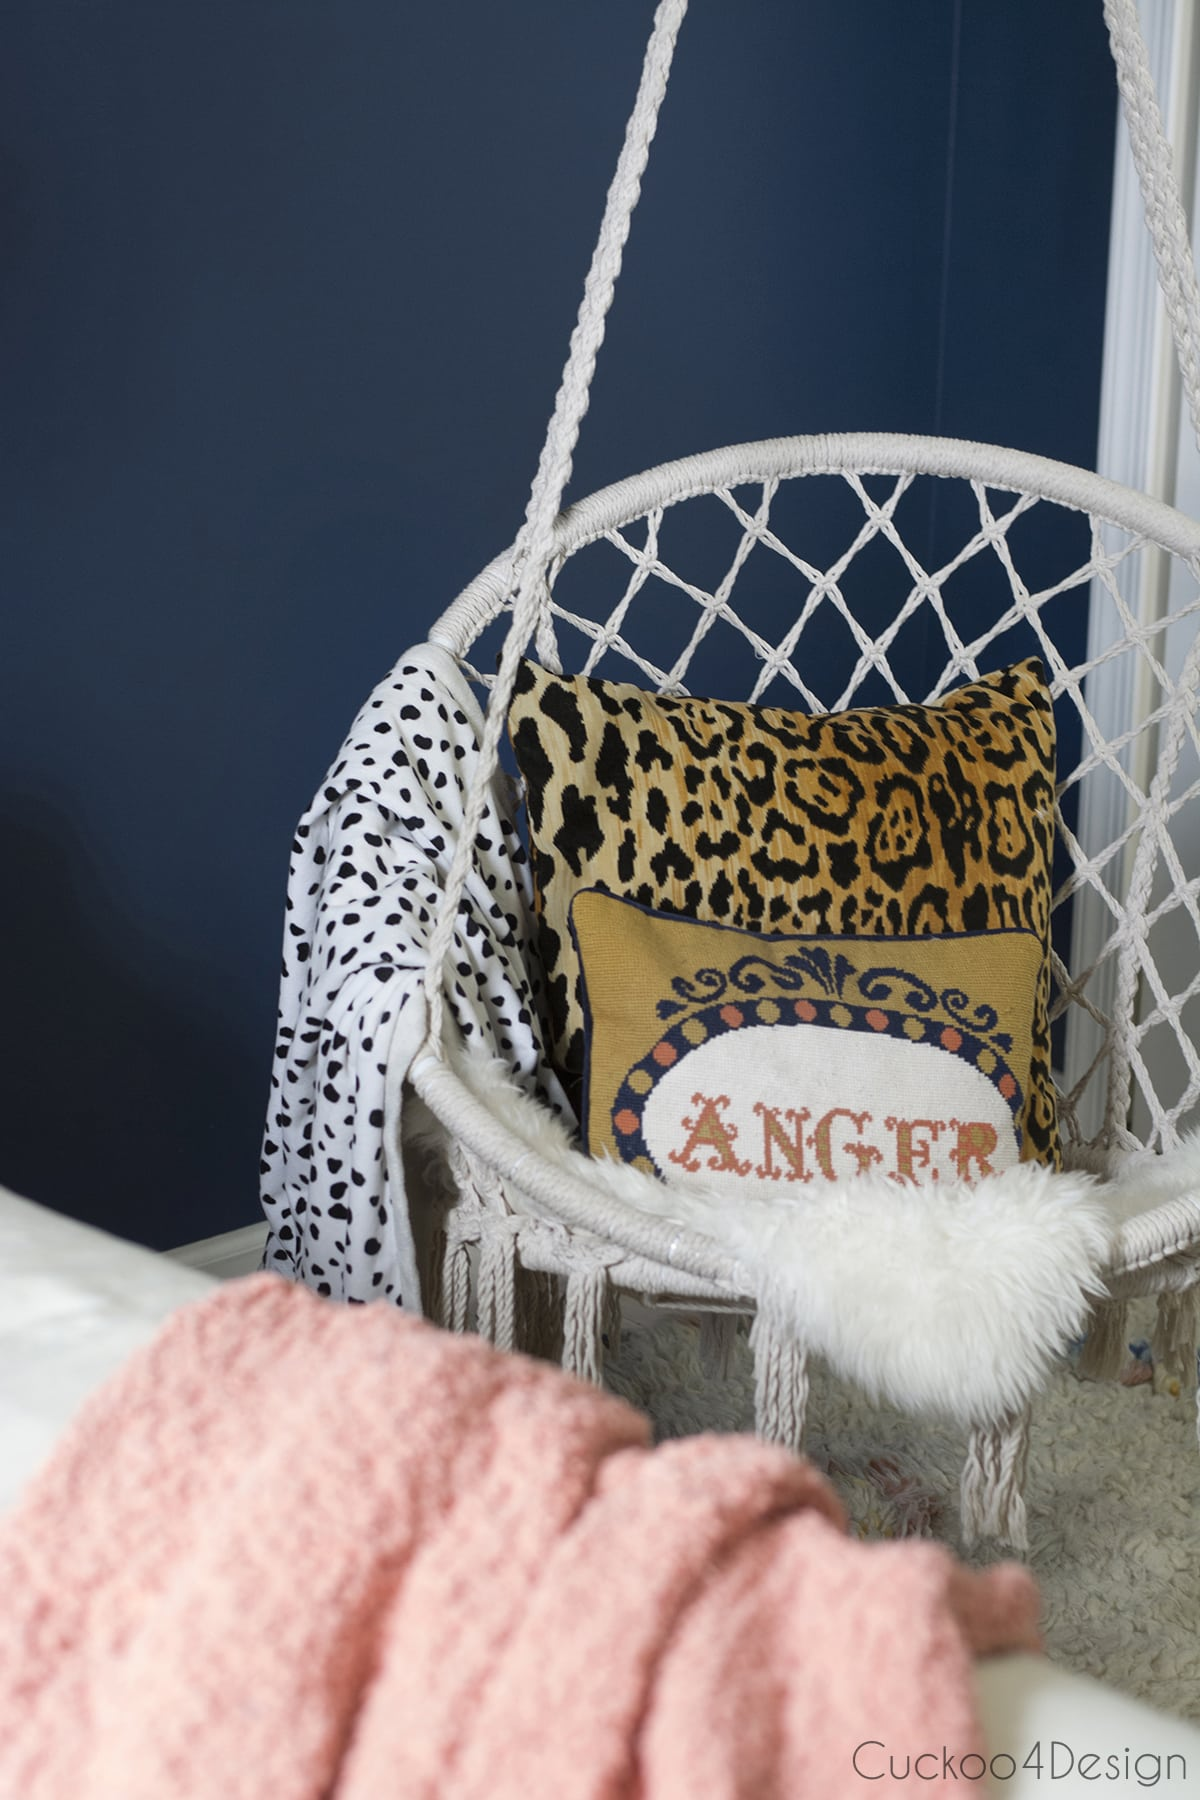 macrame hanging chair with leopard throw pillow